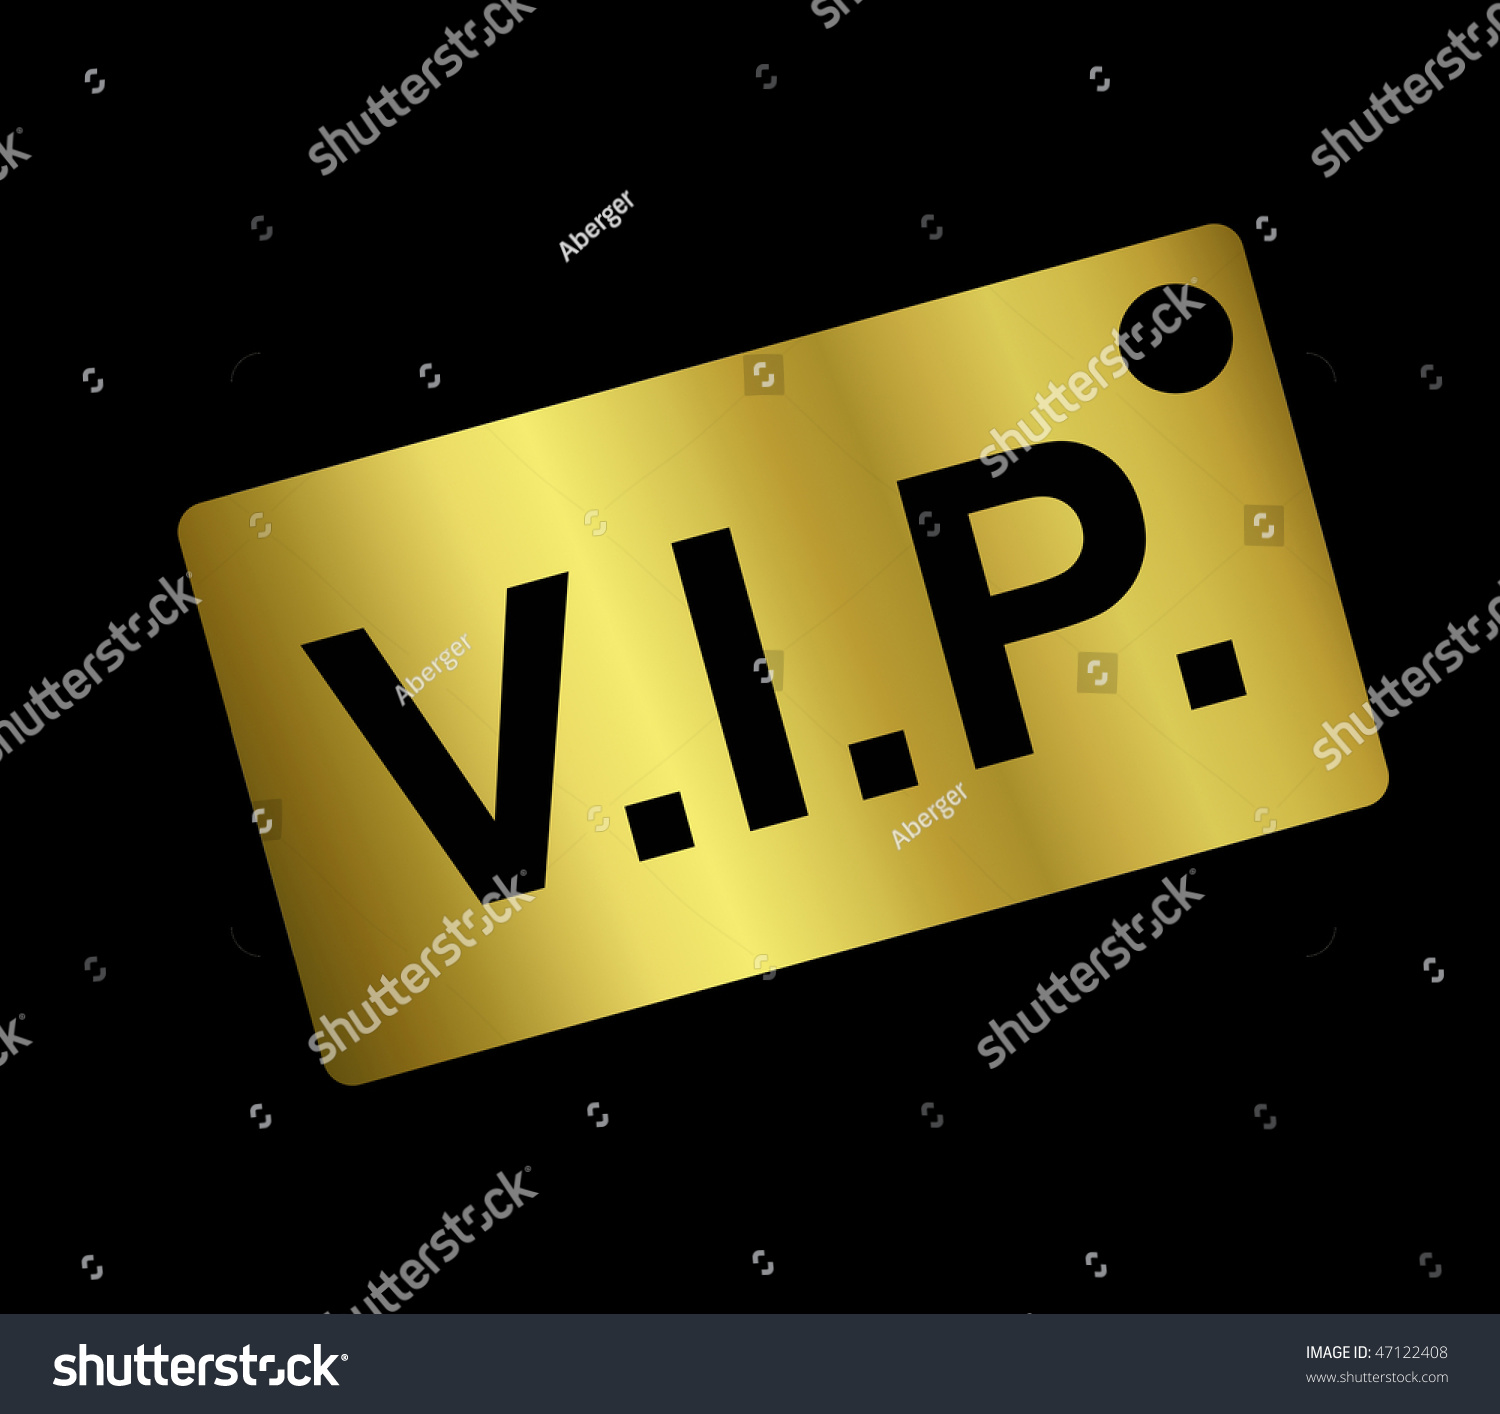 Very Important Person Stock Photo Shutterstock